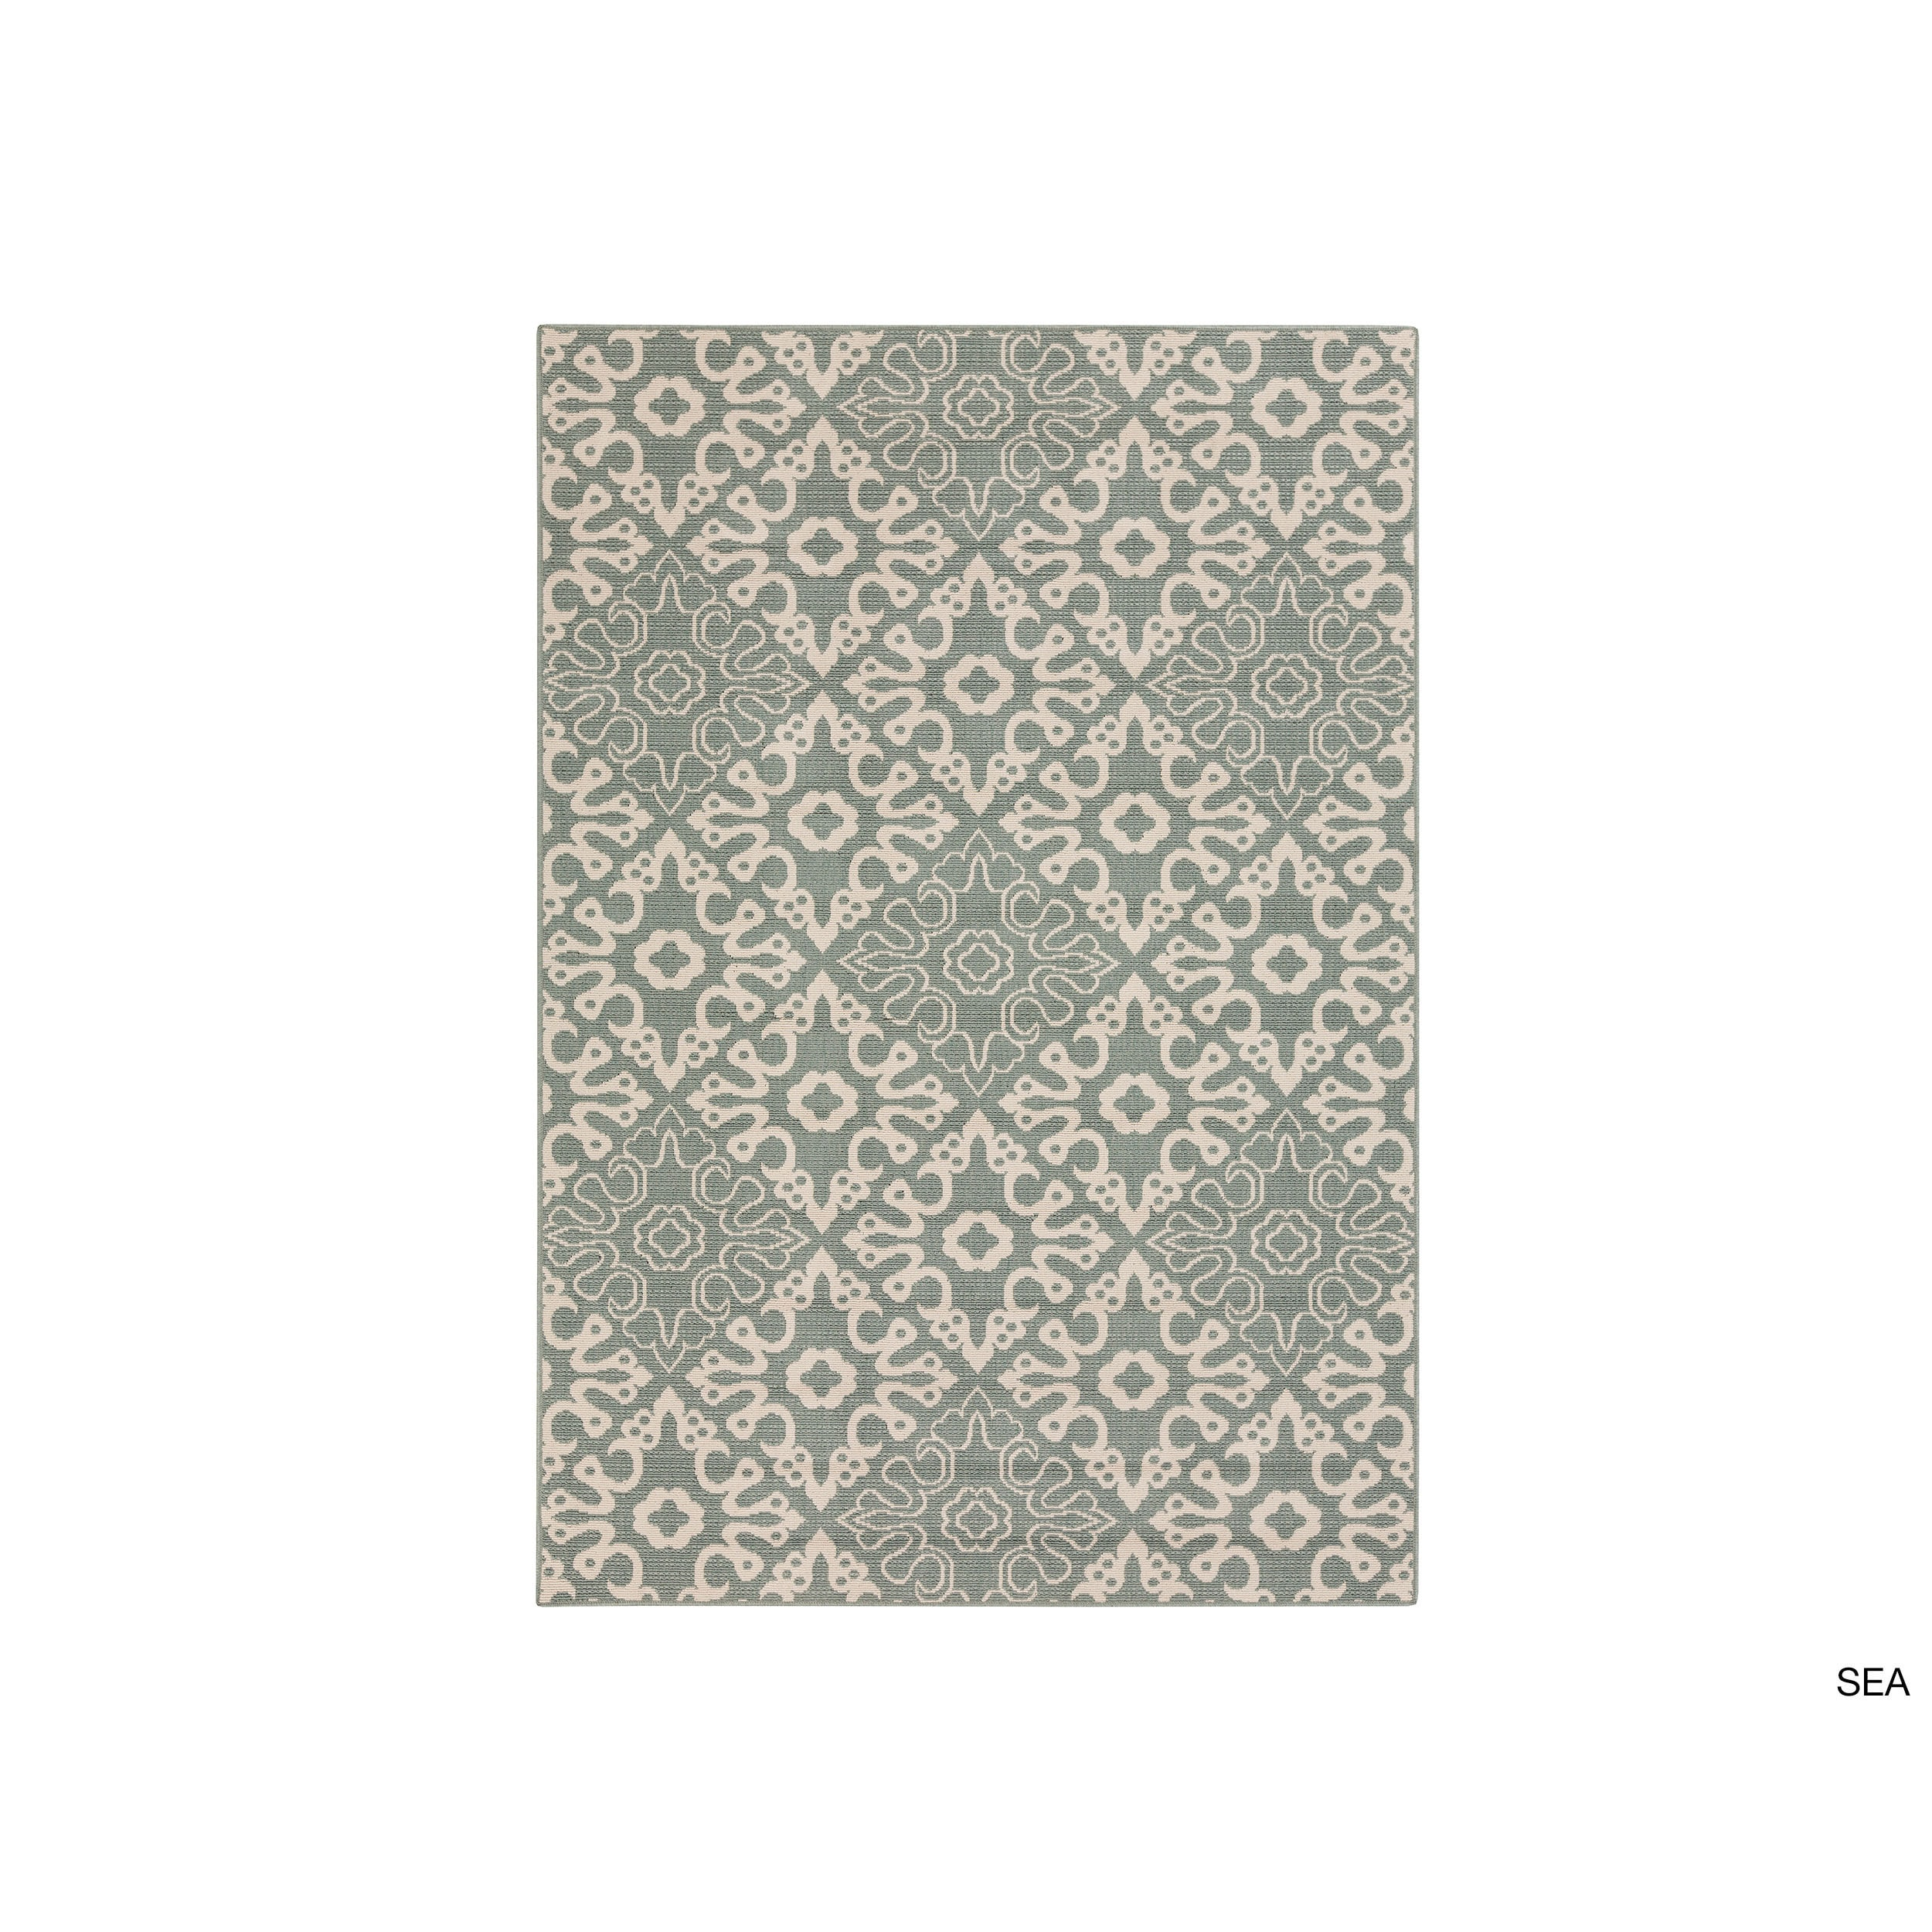 Green 6 X 9 Area Rugs Online At Our Best Deals